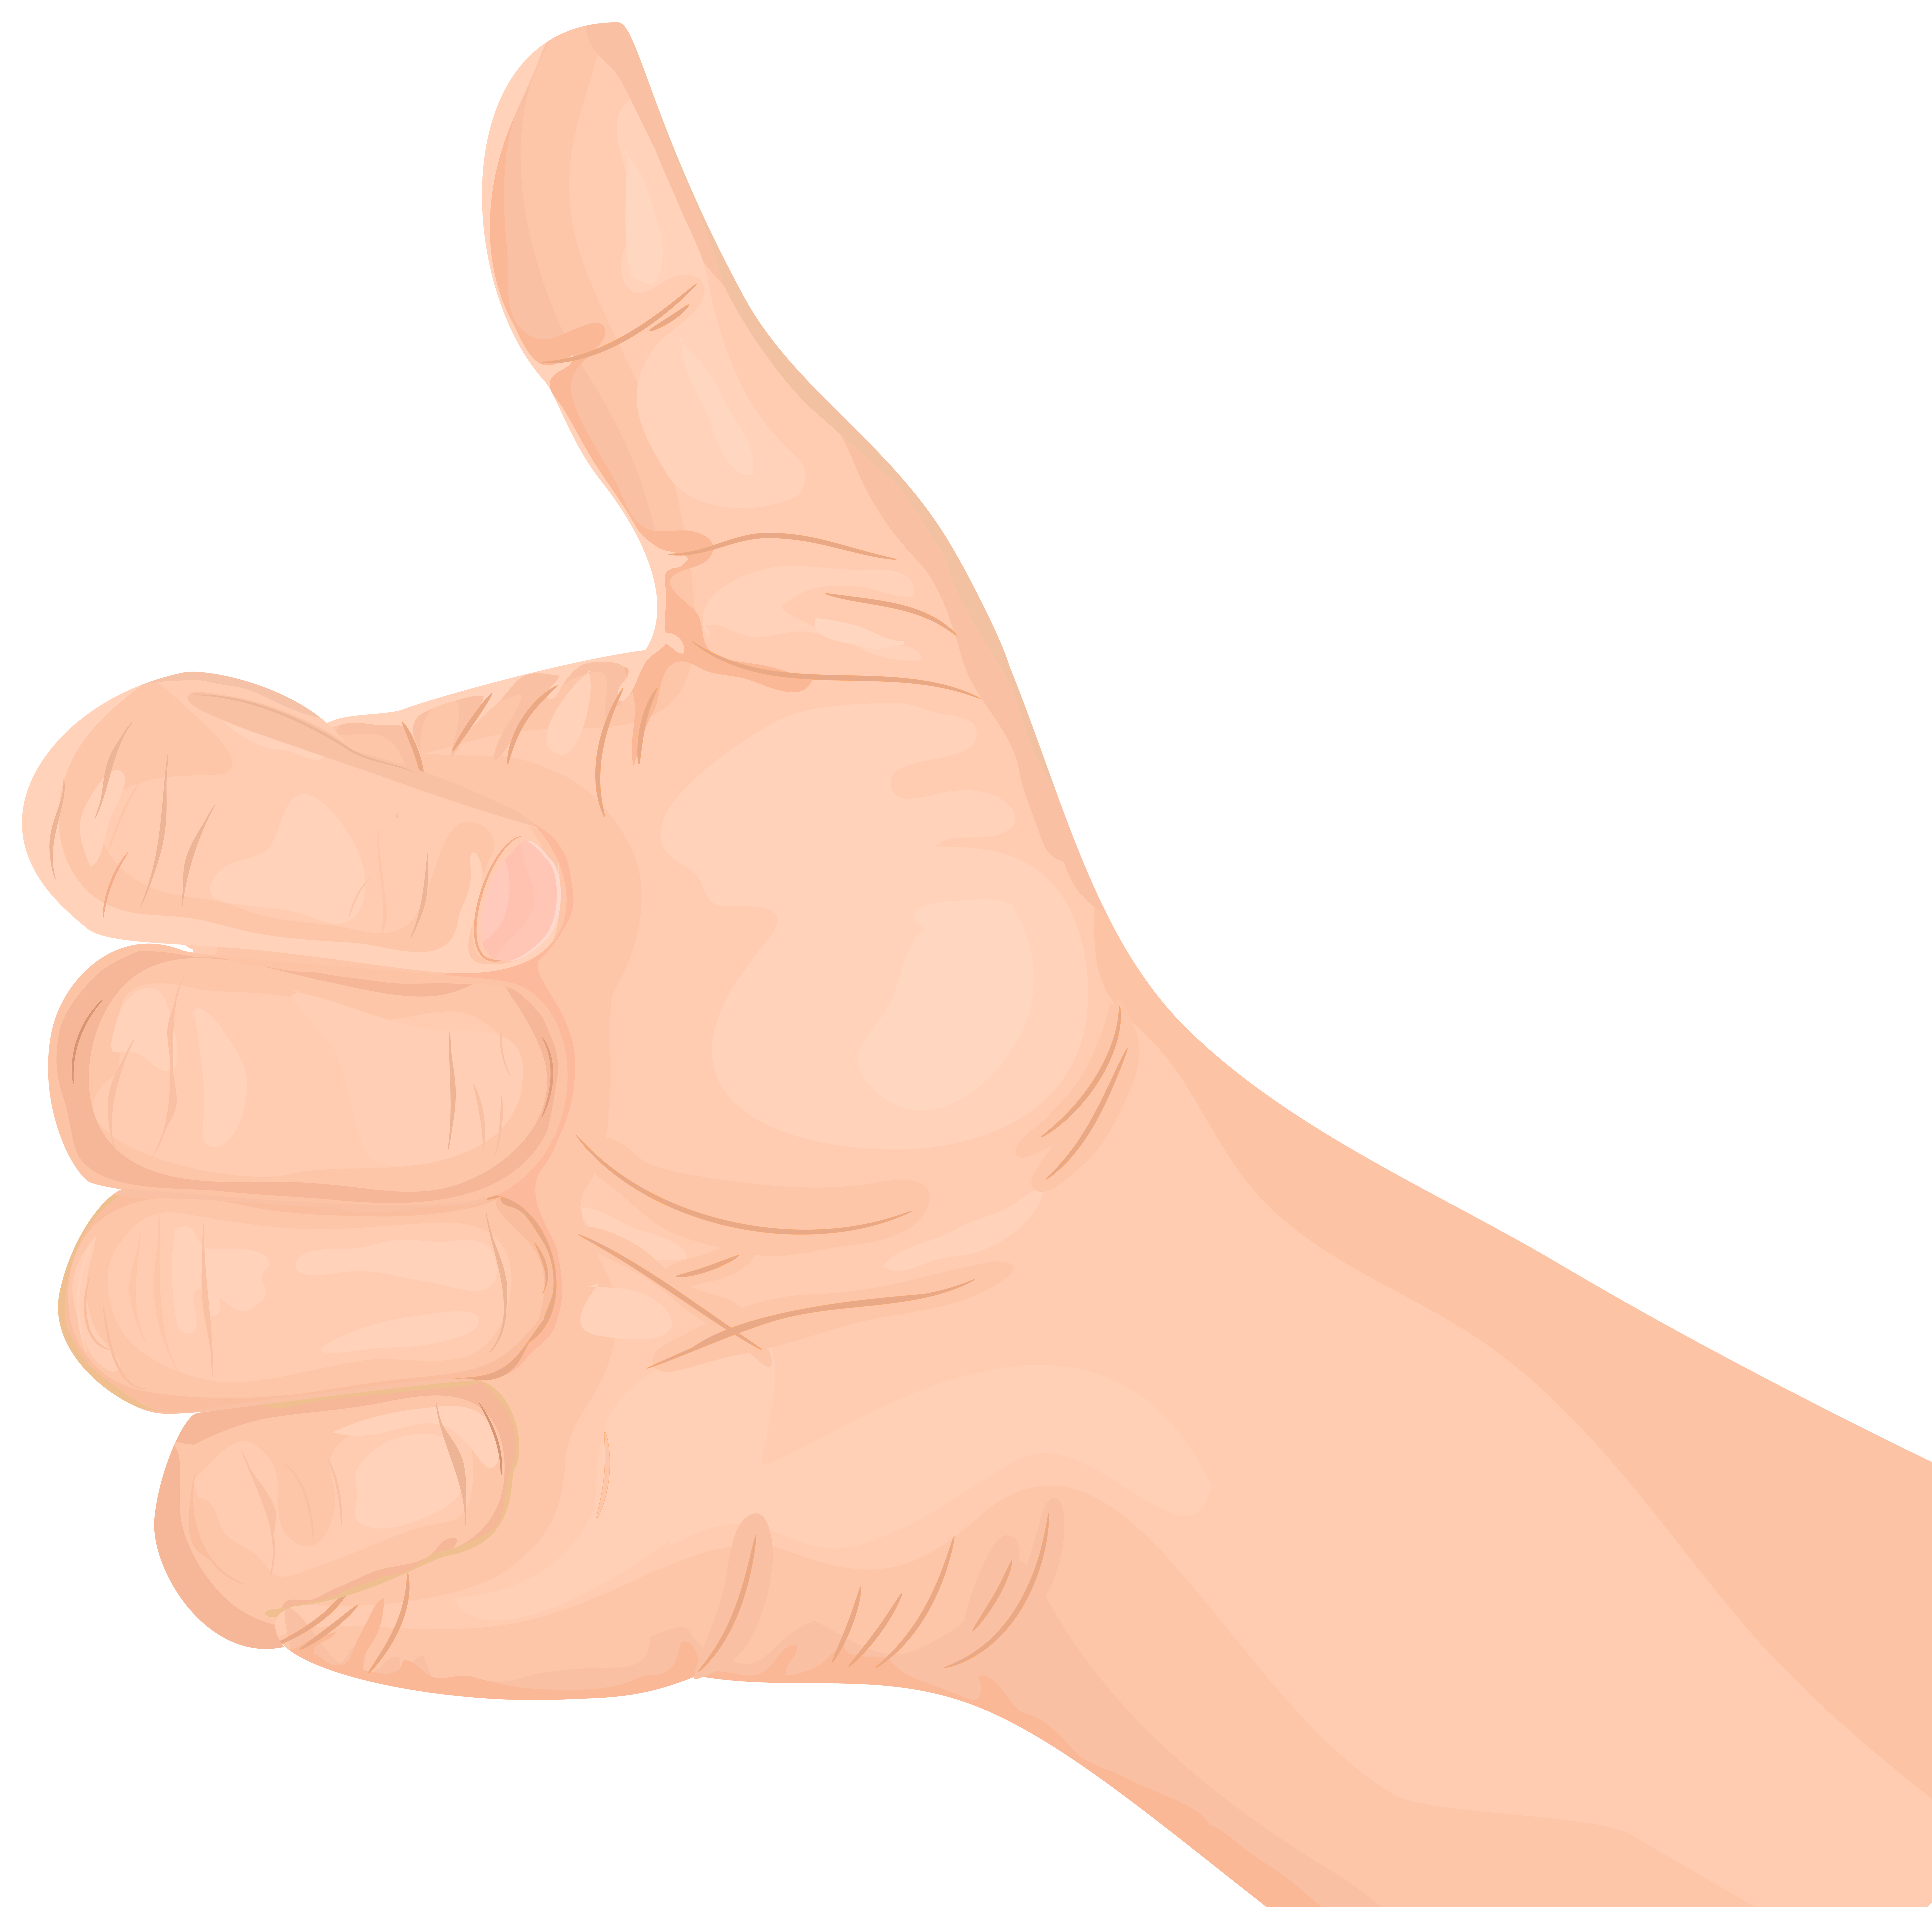 Up clipart hand. Thumbs gesture transparent png